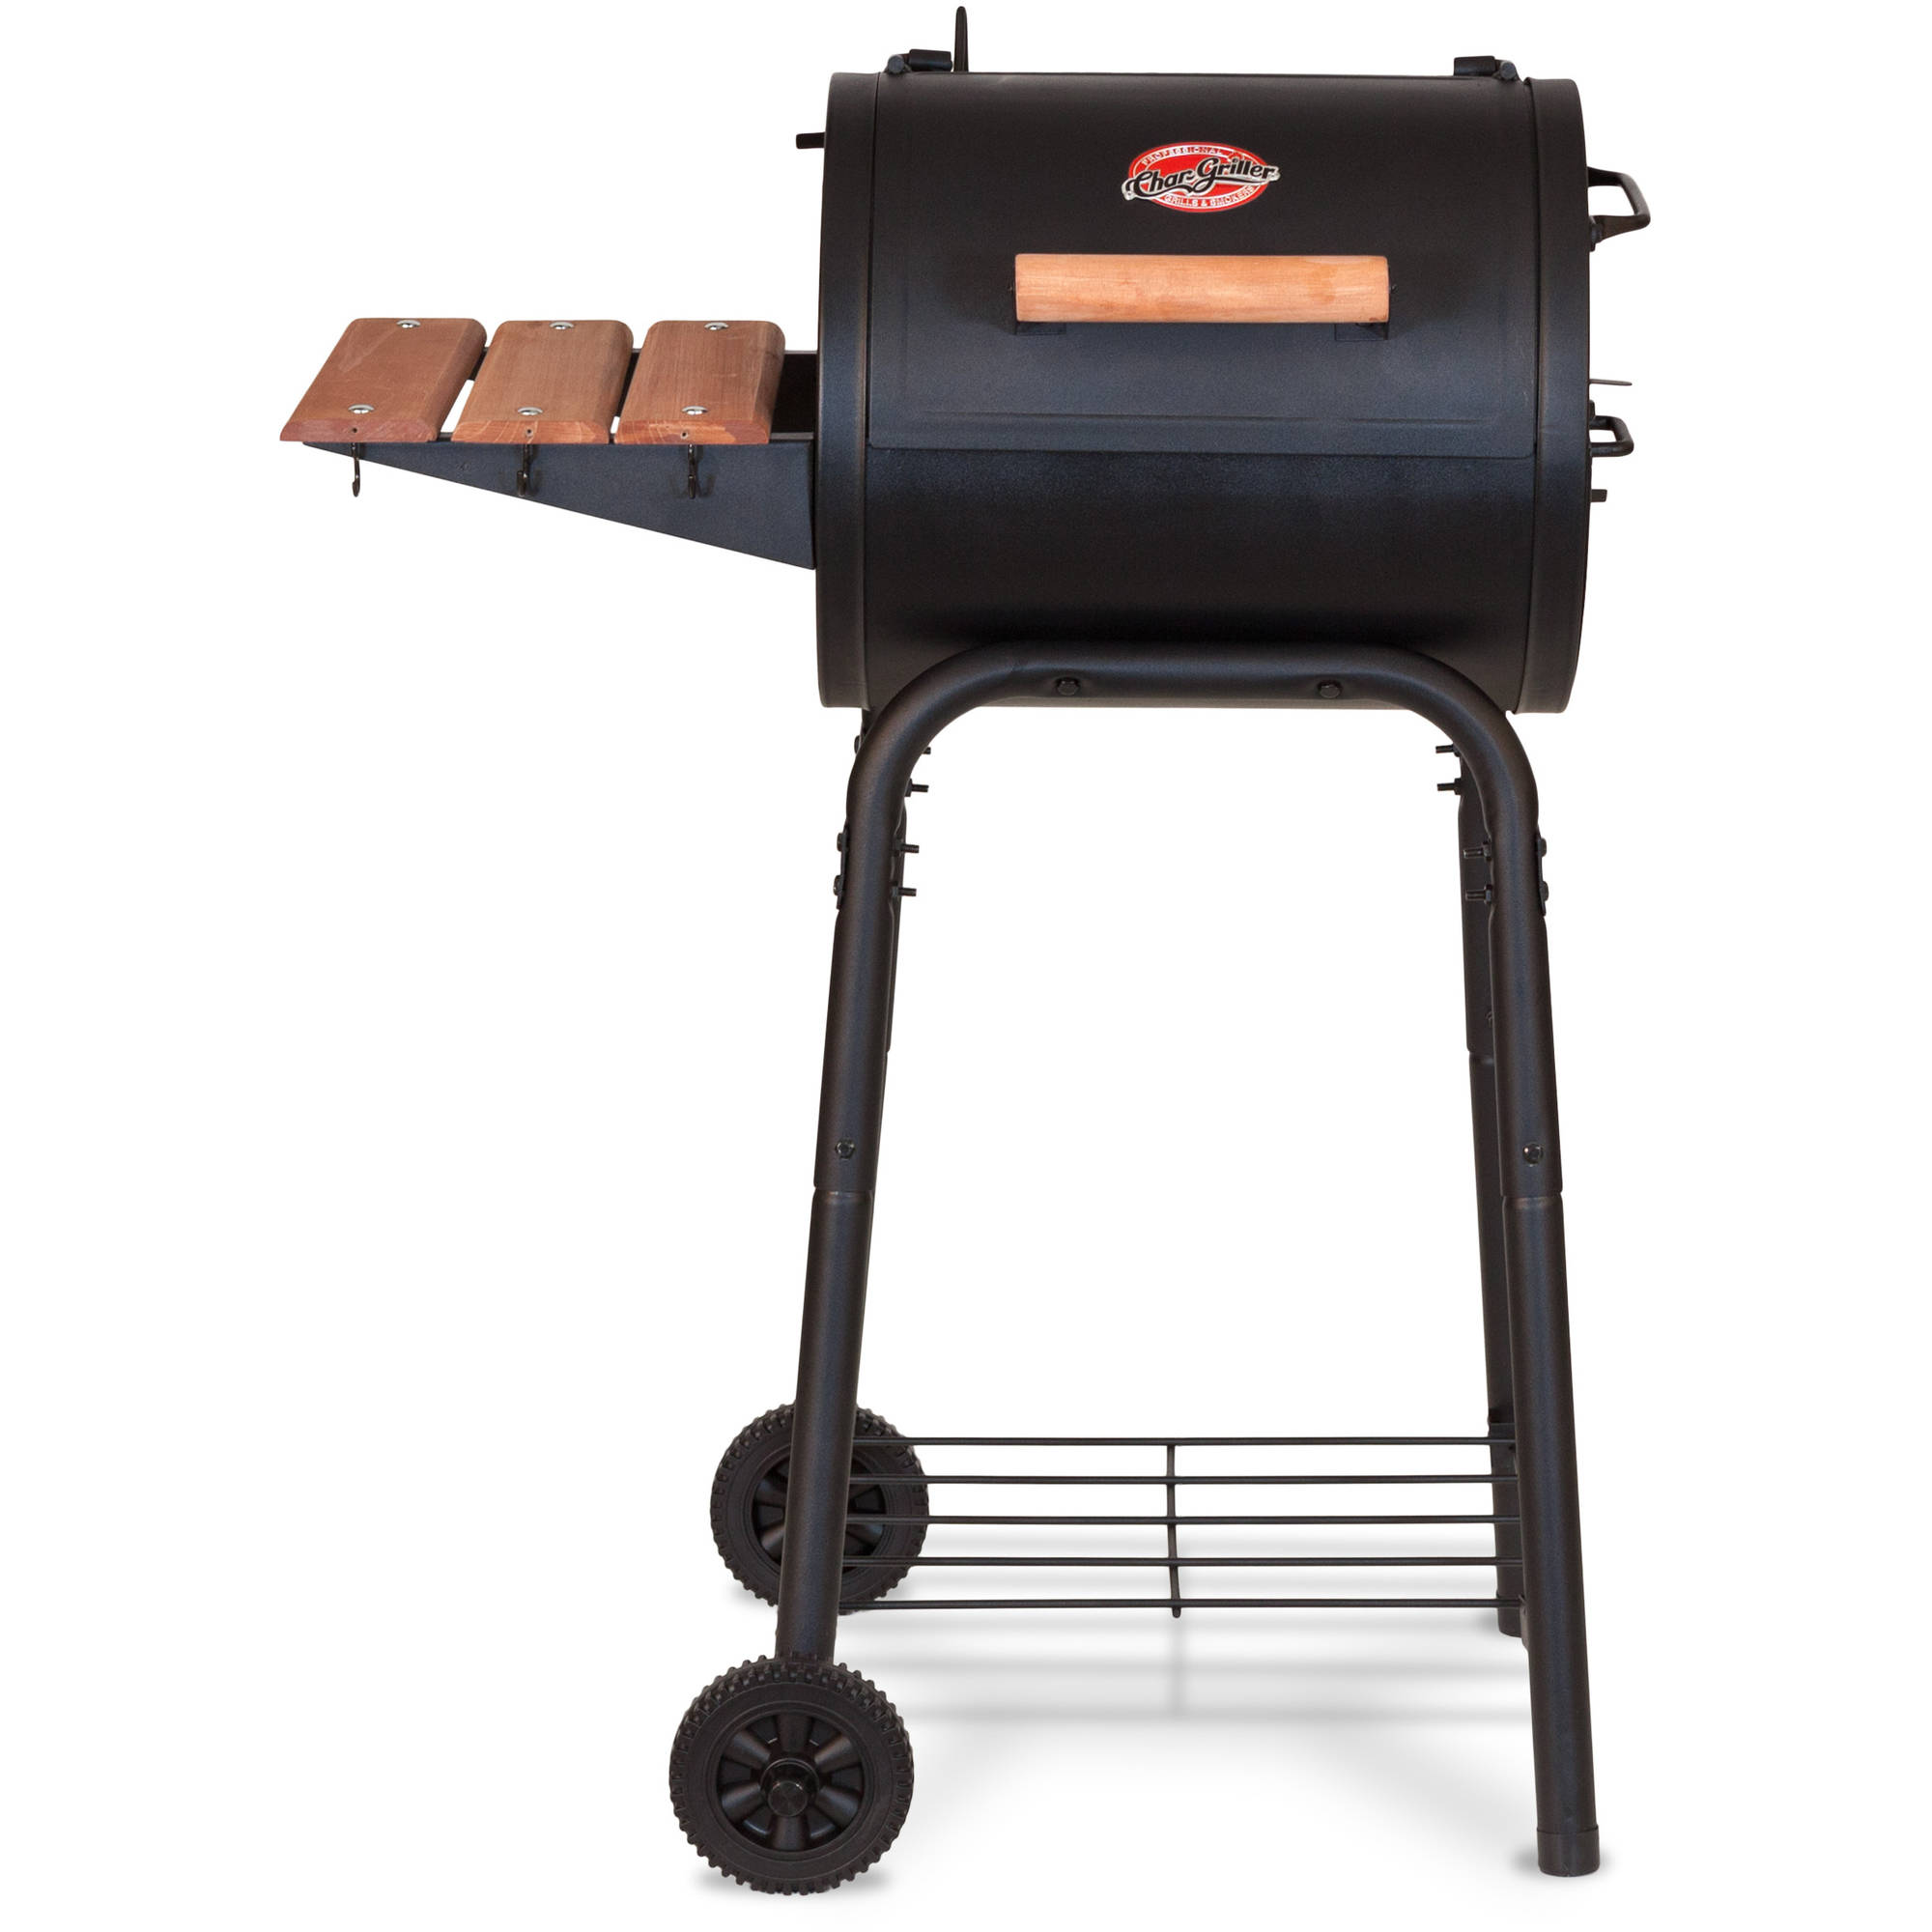 char griller pro deluxe charcoal grill. Black Bedroom Furniture Sets. Home Design Ideas